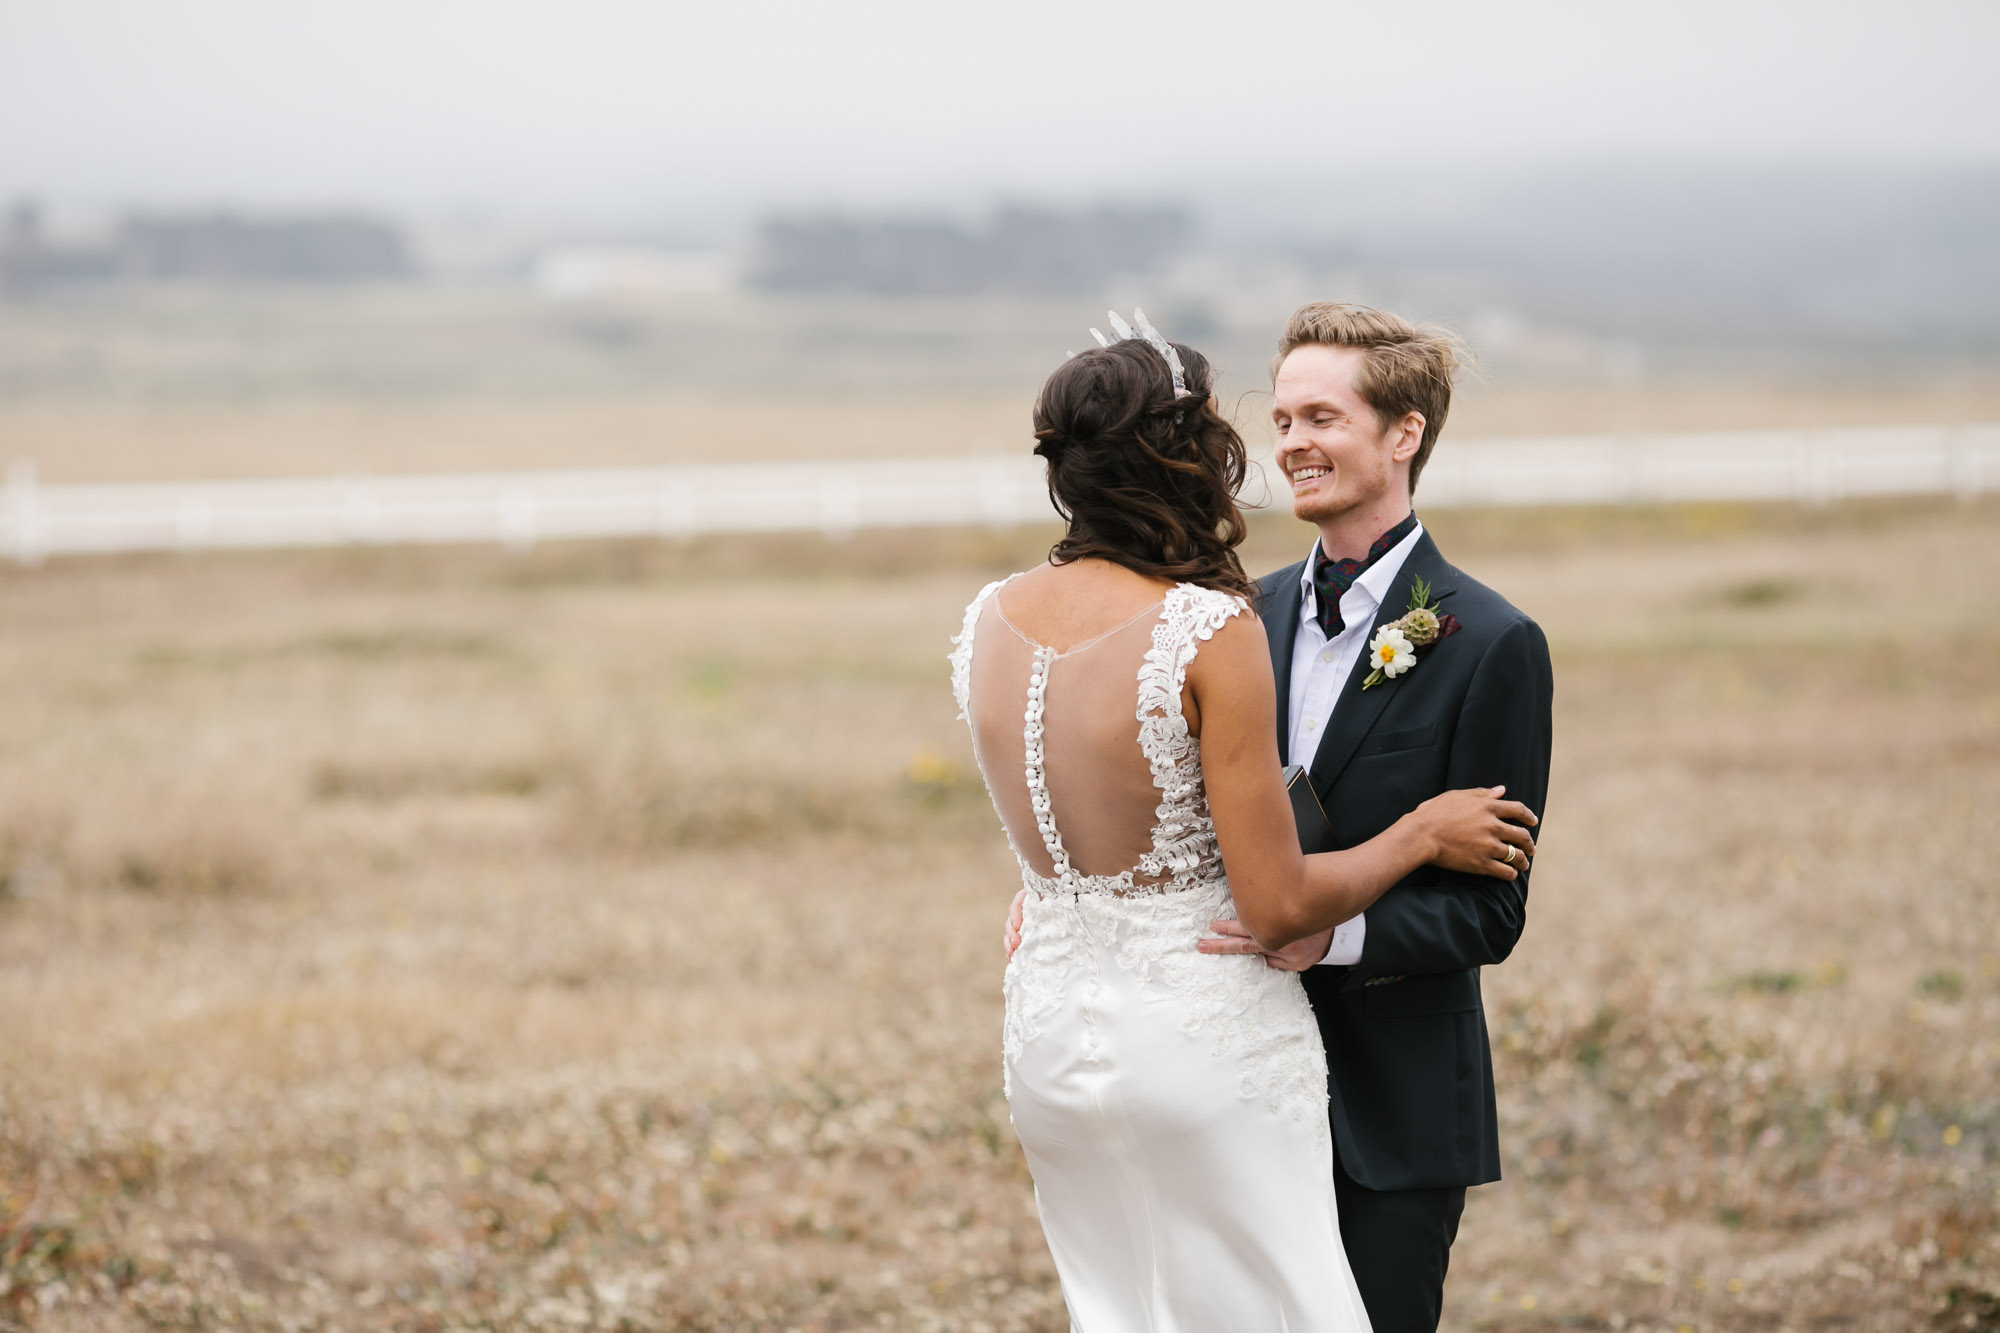 Groom smiles at his bride in a field on the California coast